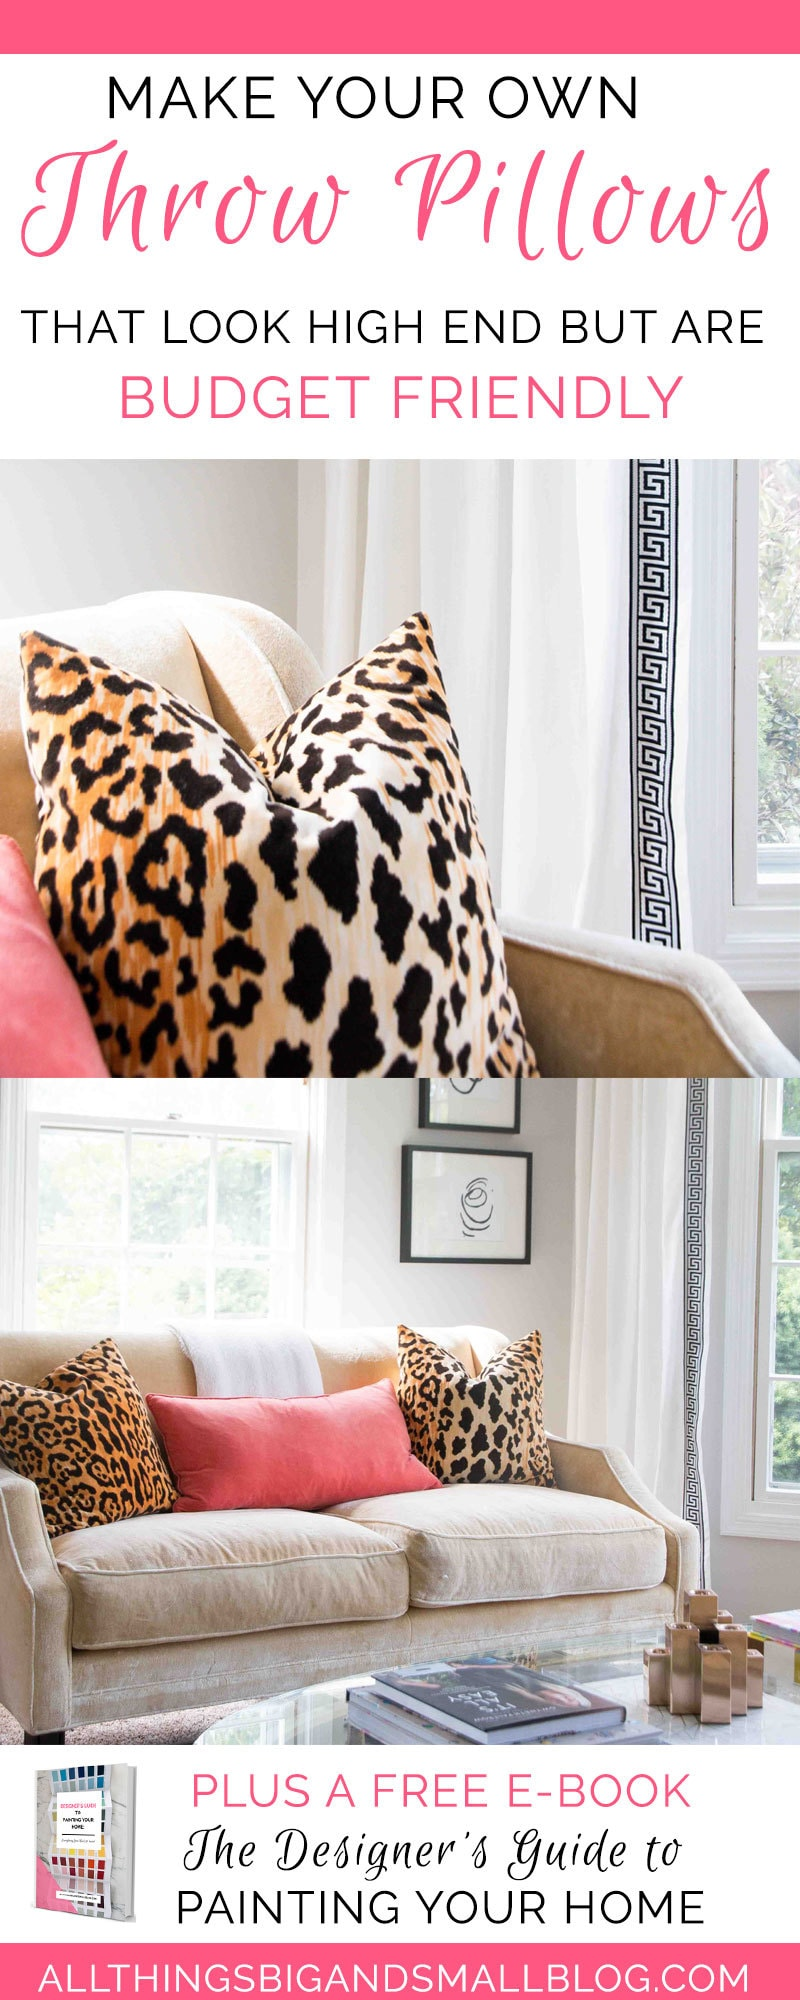 make your own throw pillow | DIY pillow cover | how to make pillow cover | ALL THINGS BIG AND SMALL